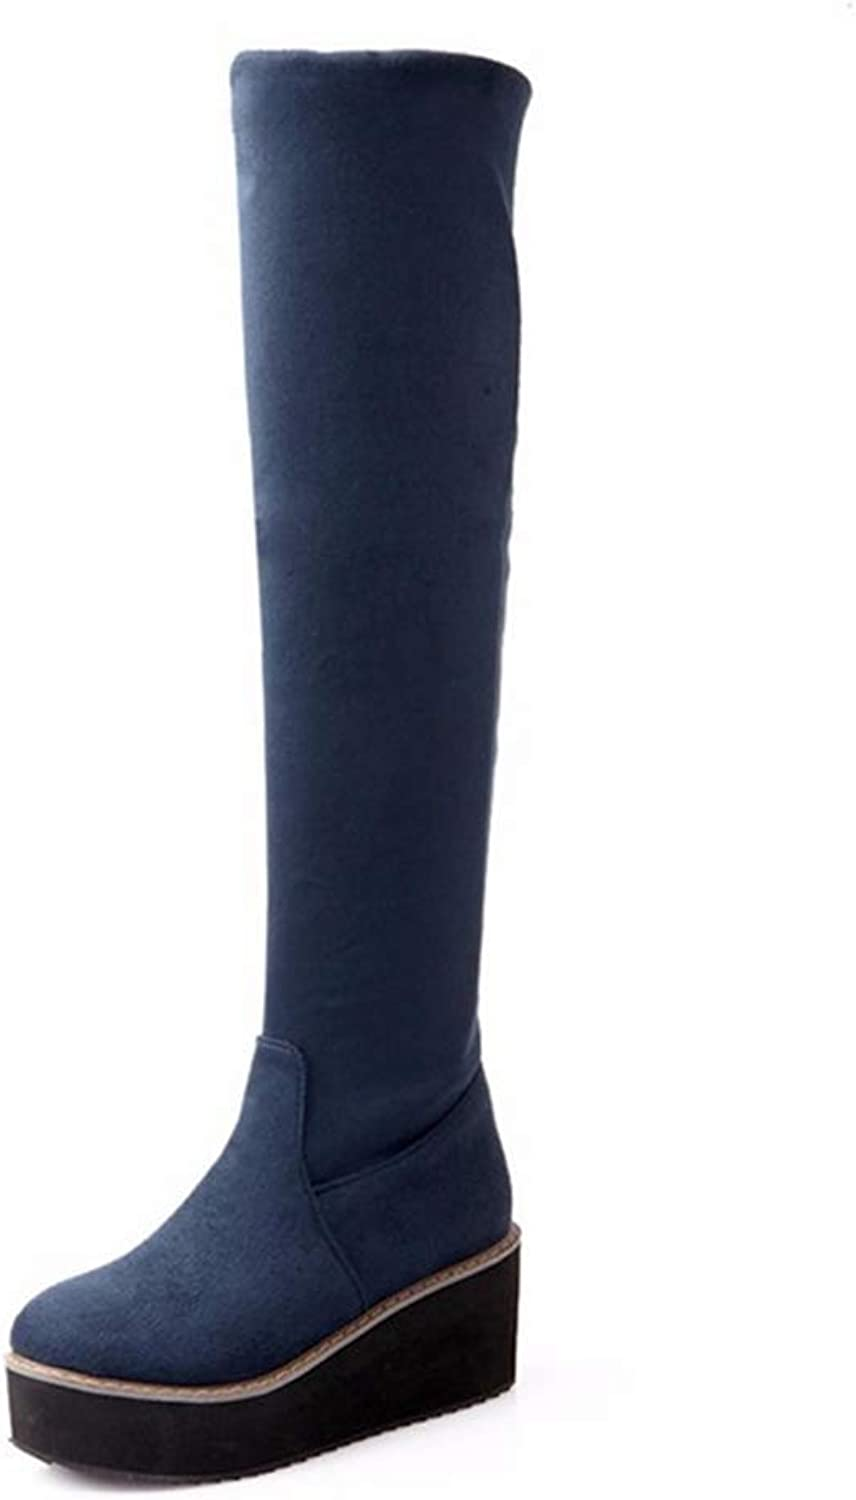 Hoxekle Autumn Winter Warm Platform Wedge Boots Women Over-The-Knee Boots Stretch Woman Thigh High Boots